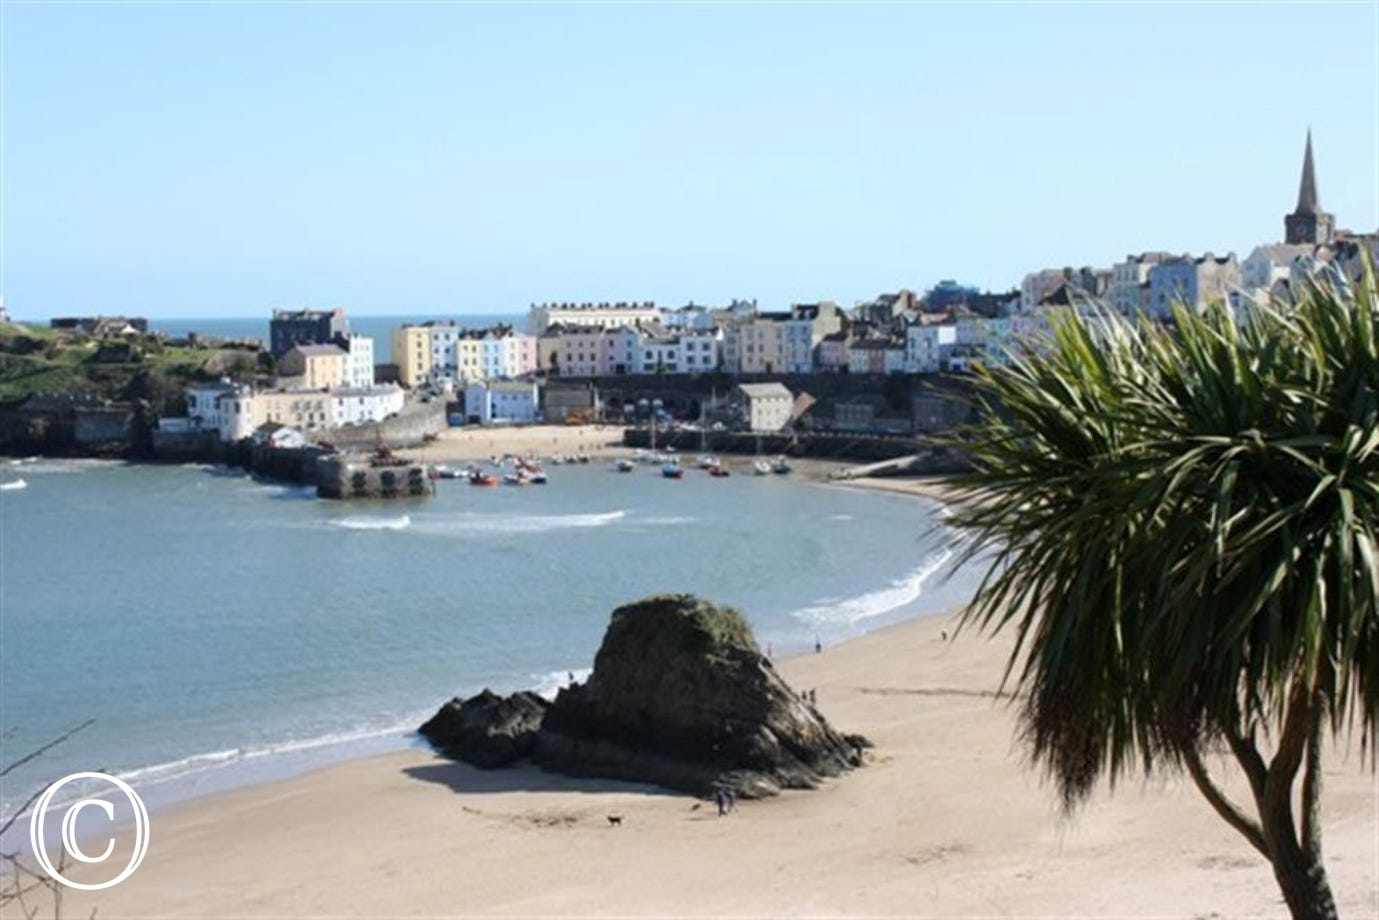 Views of Tenby across the North Beach.